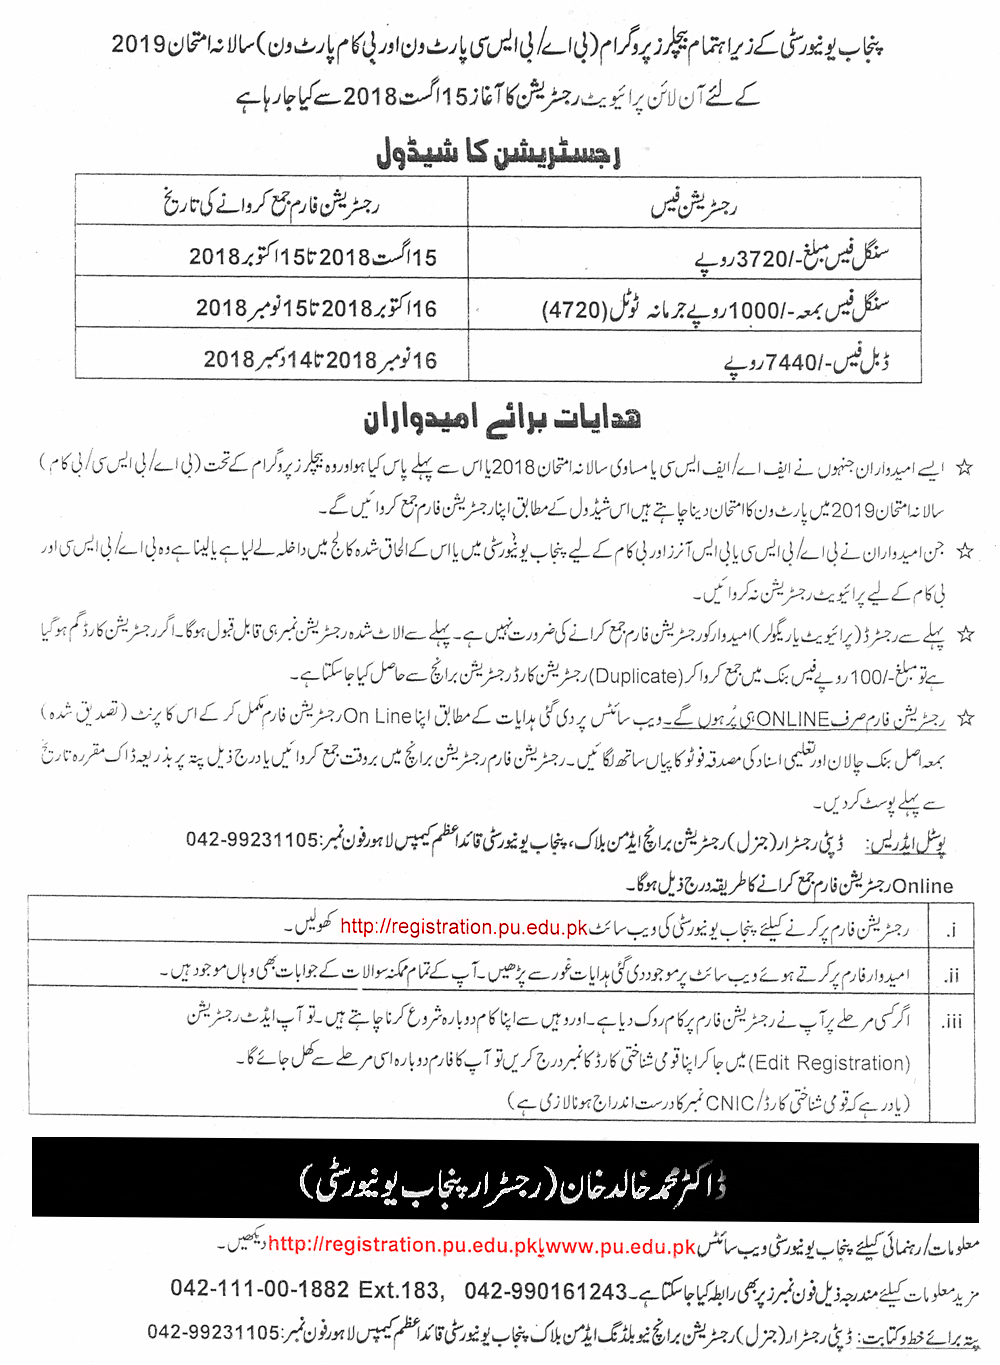 Punjab University Lahore Online Admission Schedule 2019